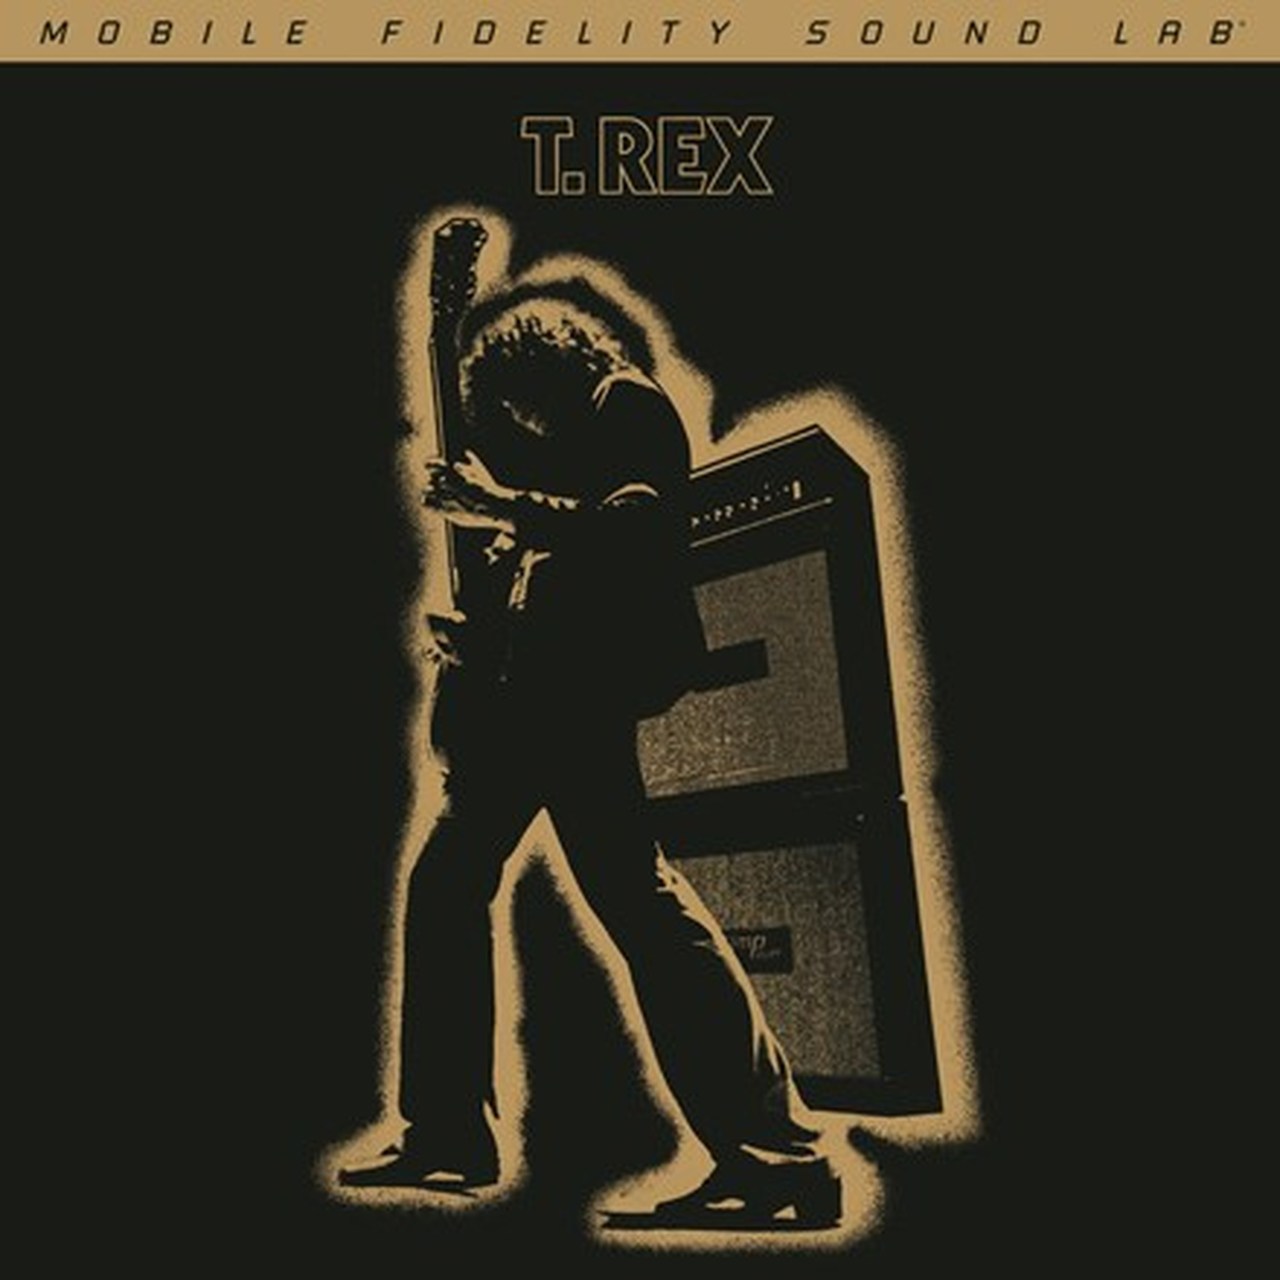 T. Rex «Electric Warrior» - издание на 45 оборотов от Mobile Fidelity